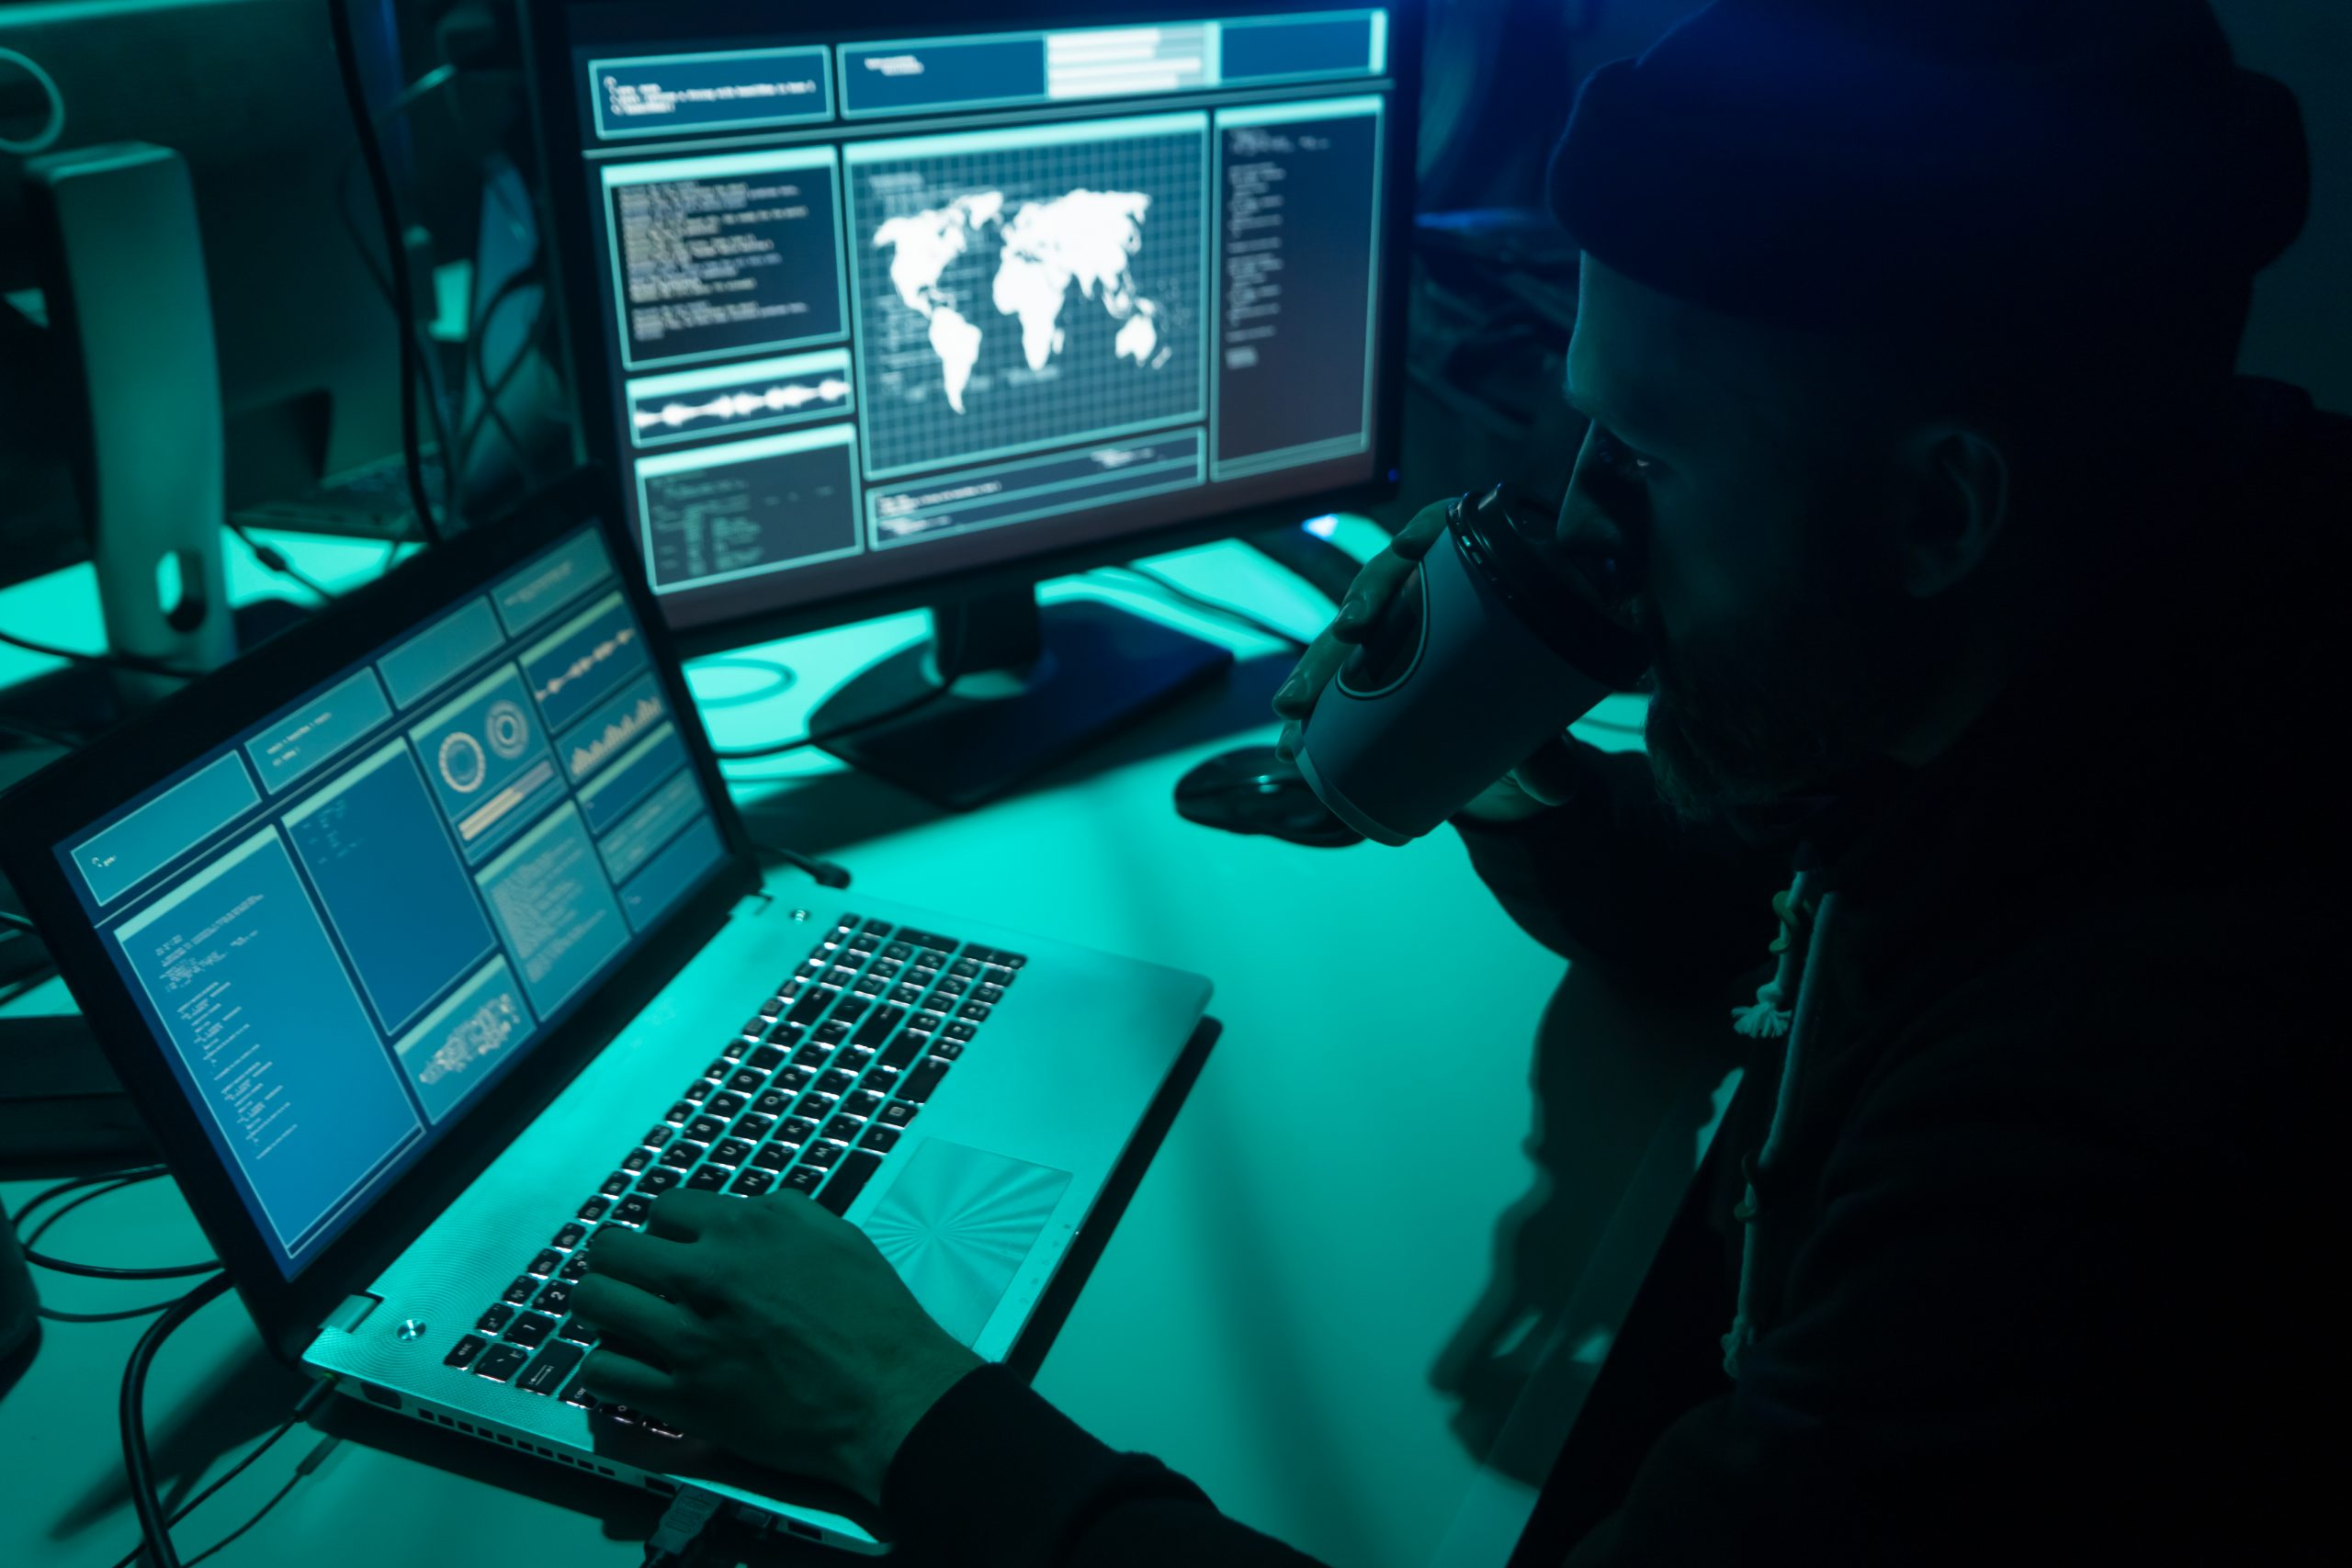 Implement security control to safeguard systems against malware attacks